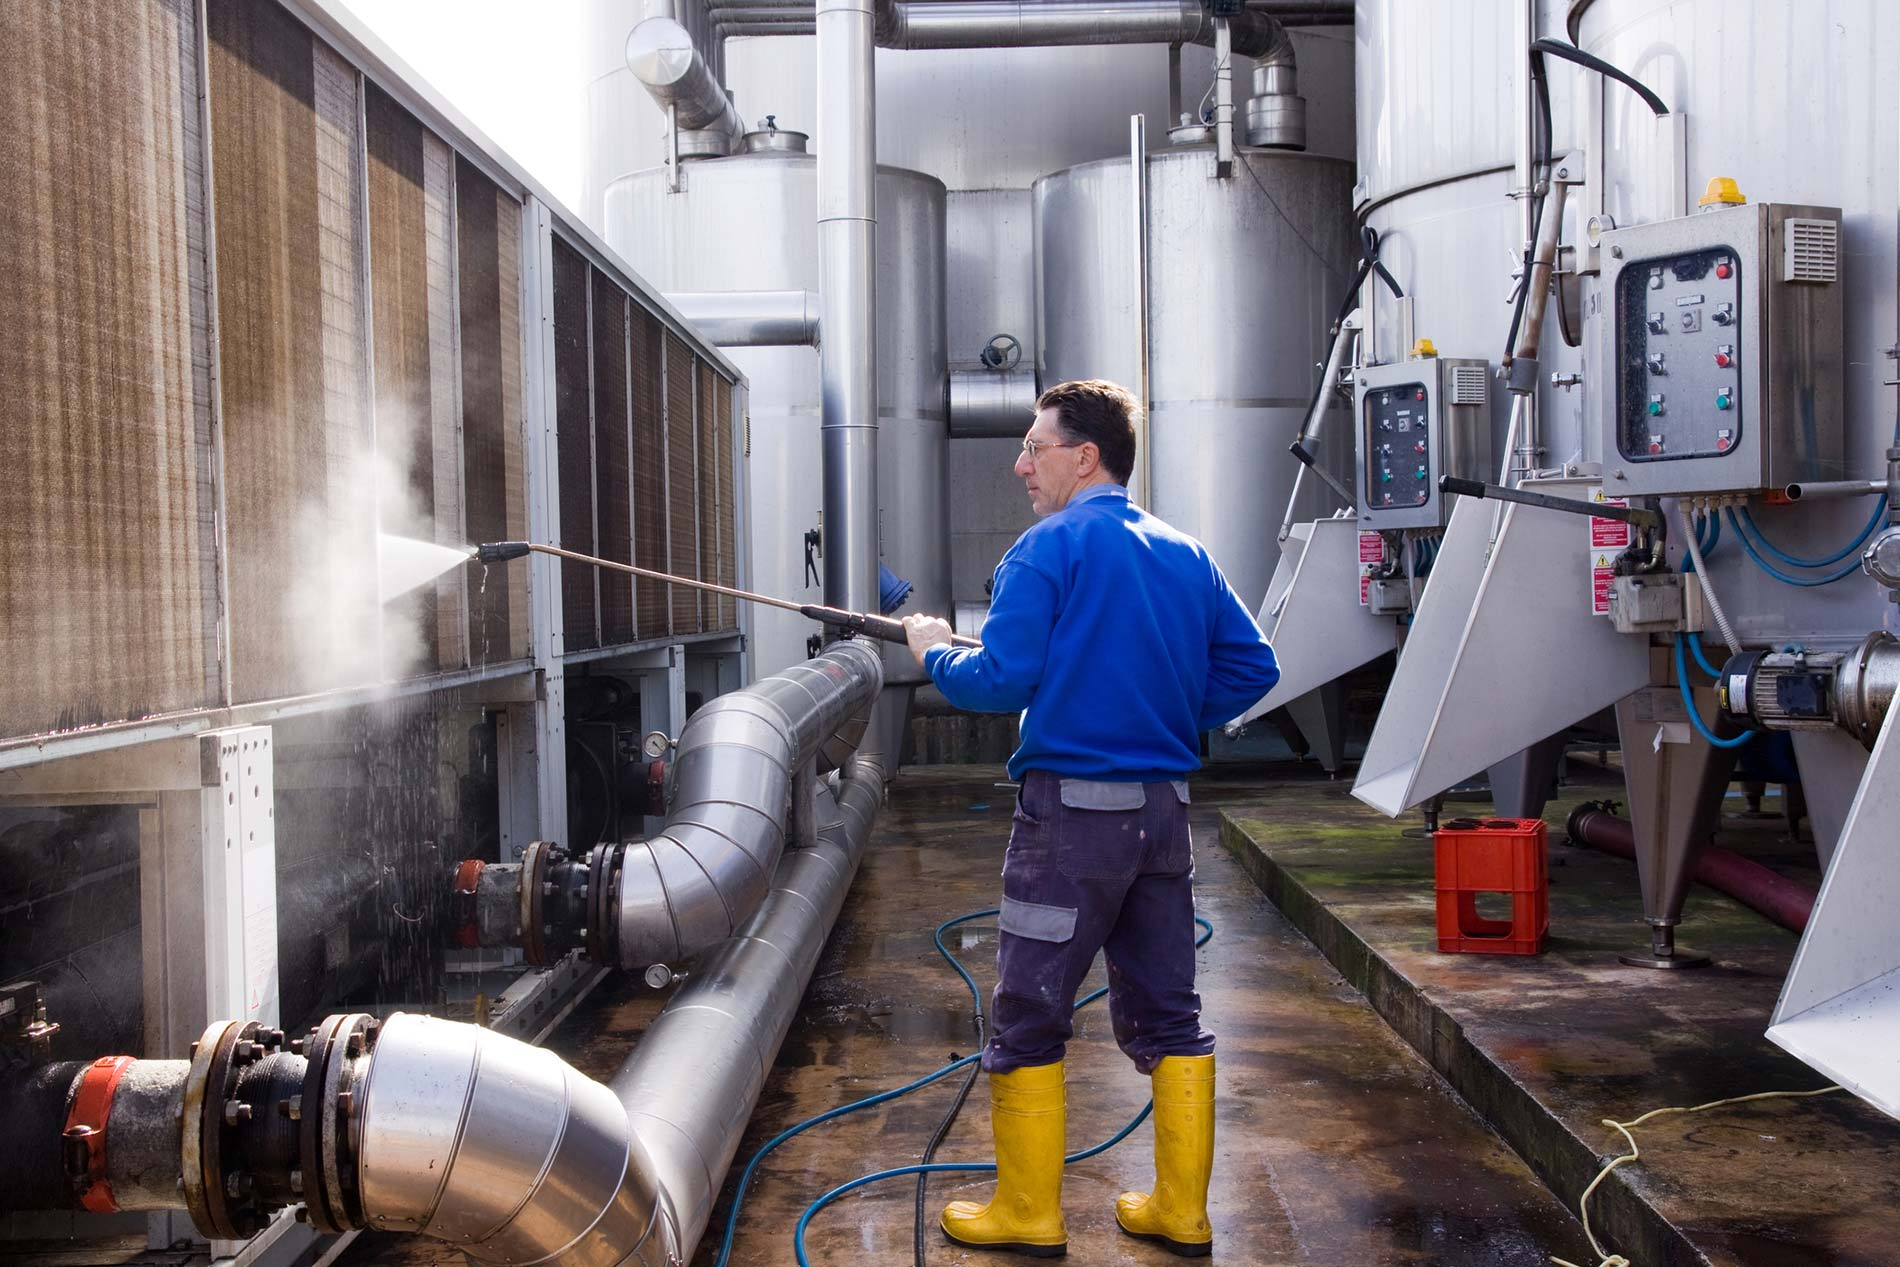 Interior and Exterior Pressure Washing Services from Foster Janitorial